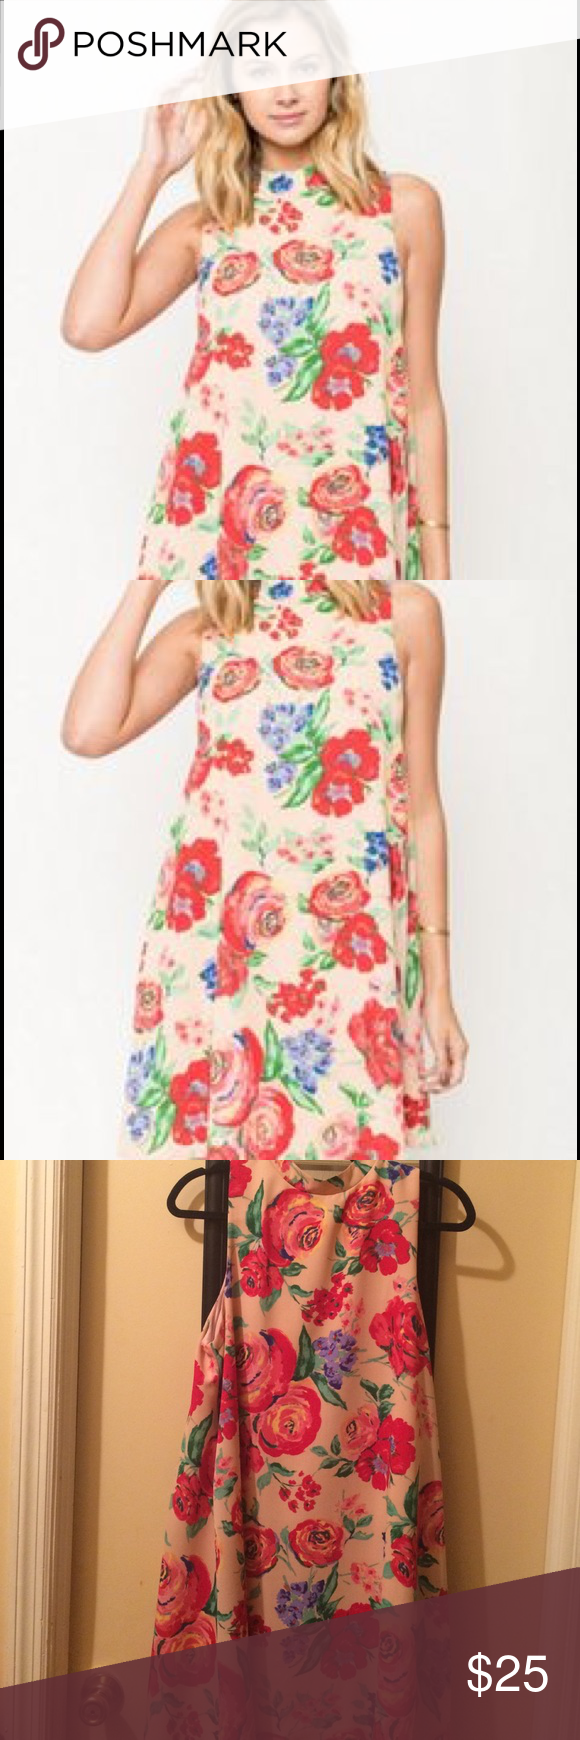 Floral Dress Floral dress only worn once Everly Dresses Midi